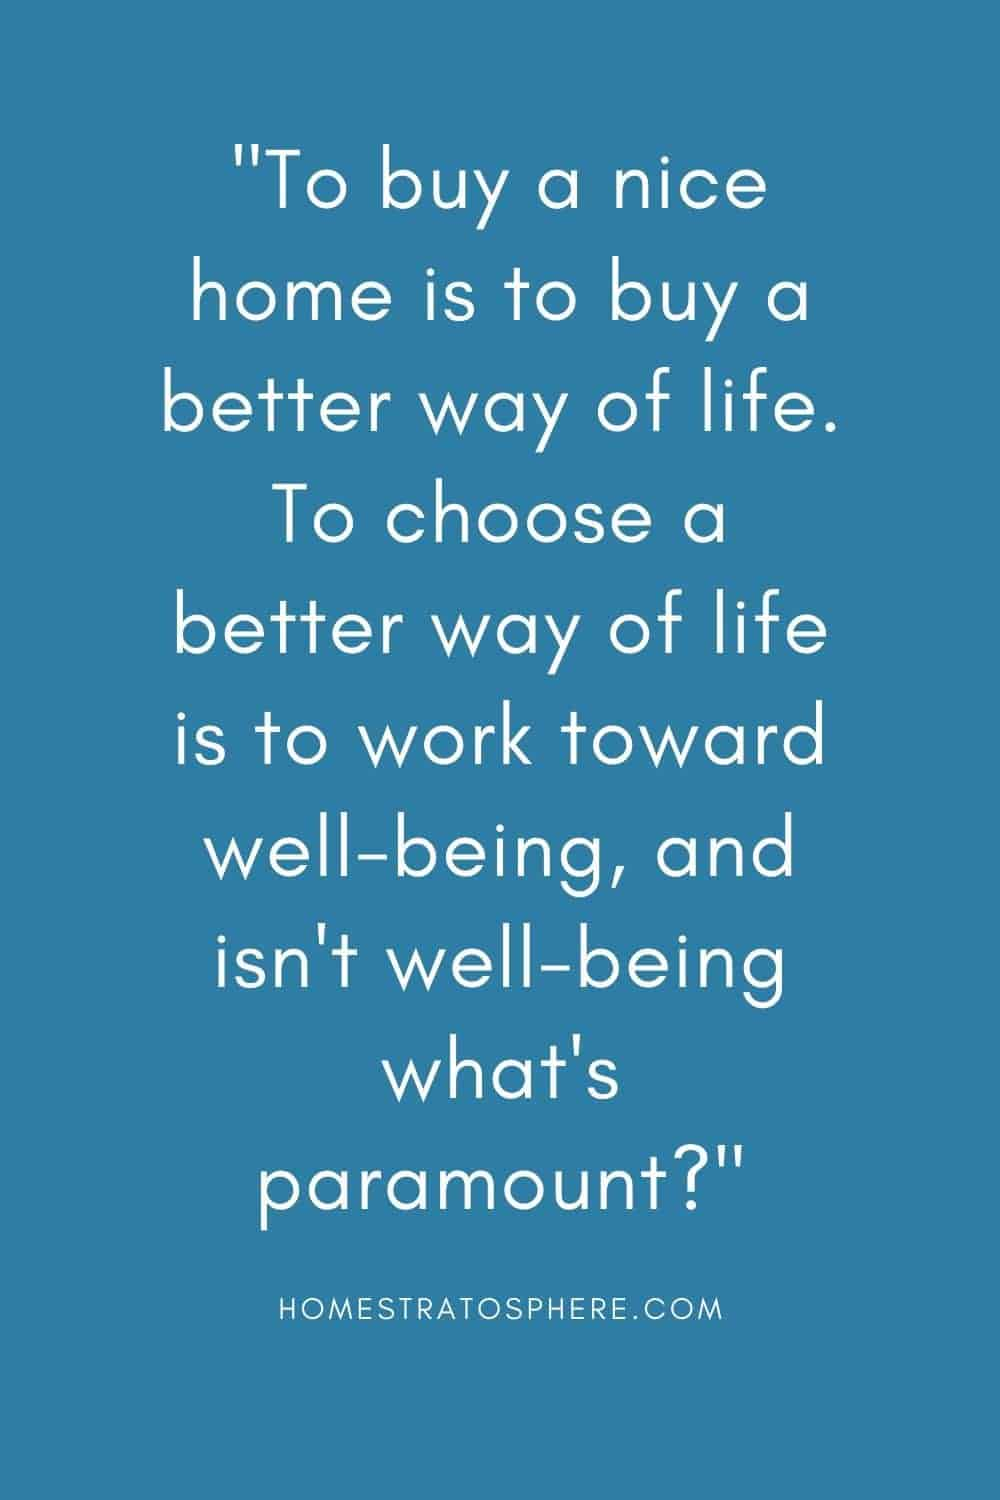 """To buy a nice home is to buy a better way of life. To choose a better way of life is to work toward well-being, and isn't well-being what's paramount?"""